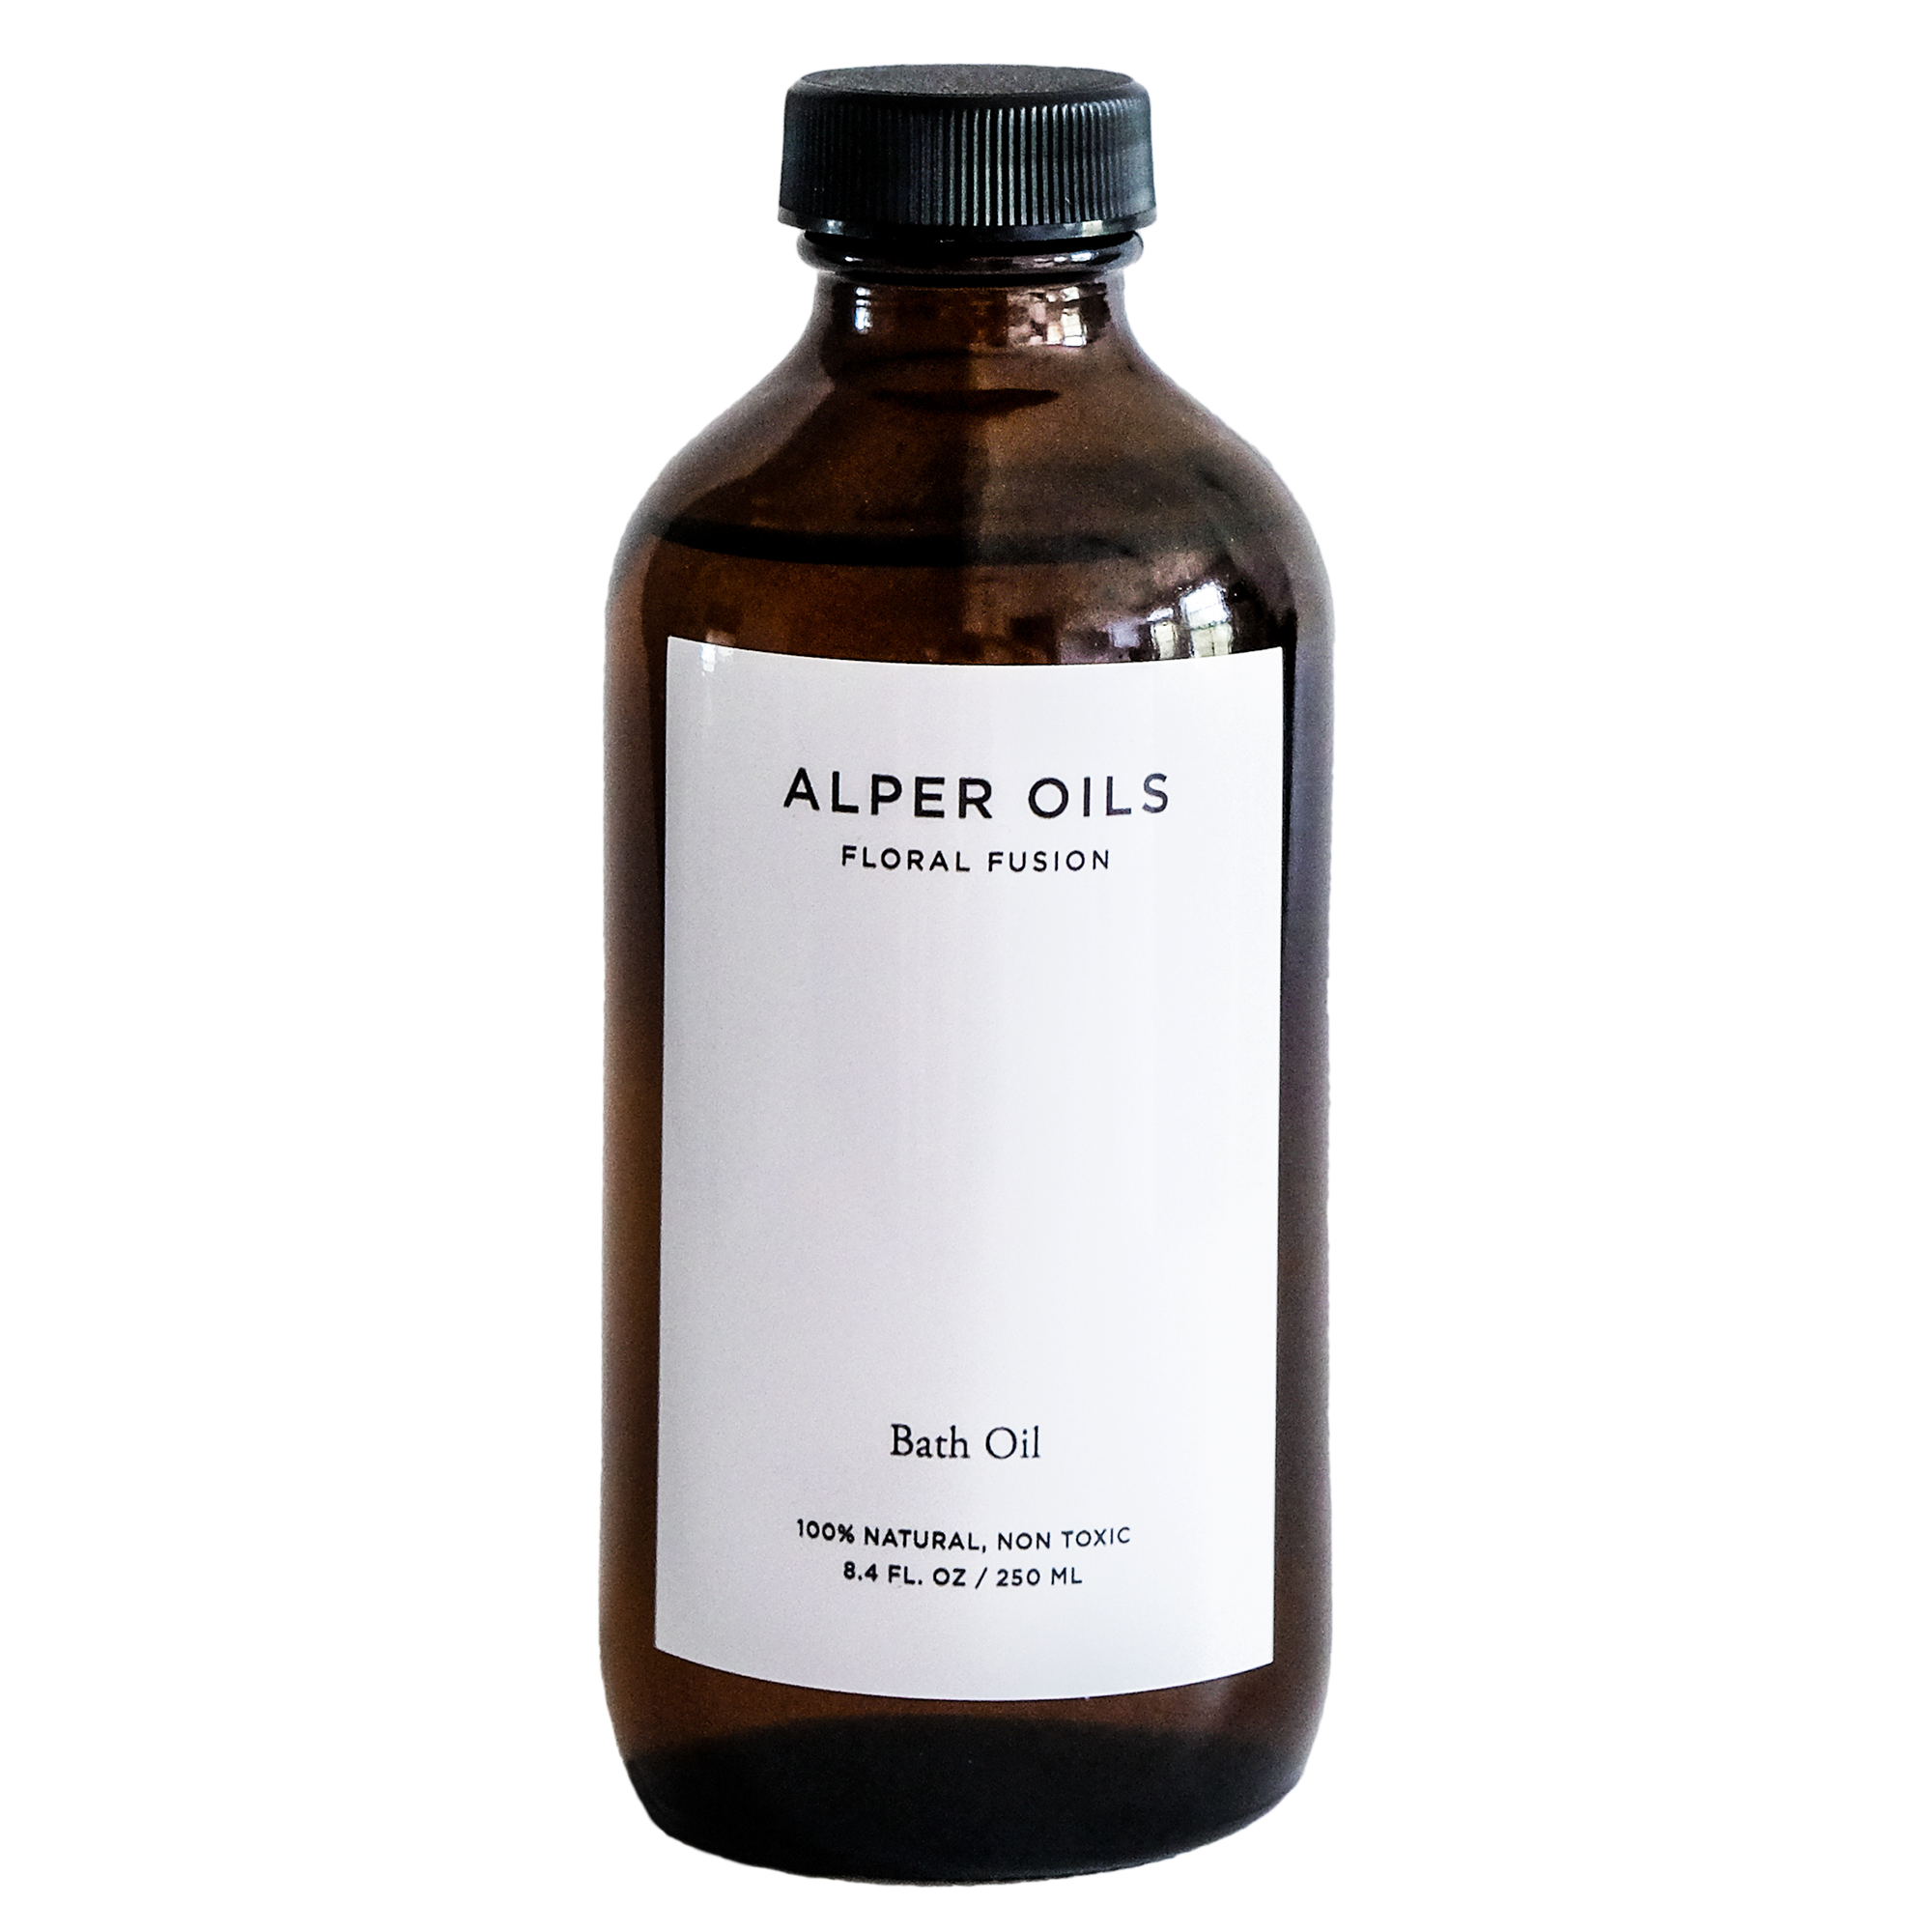 Alper Oils Bath Oil